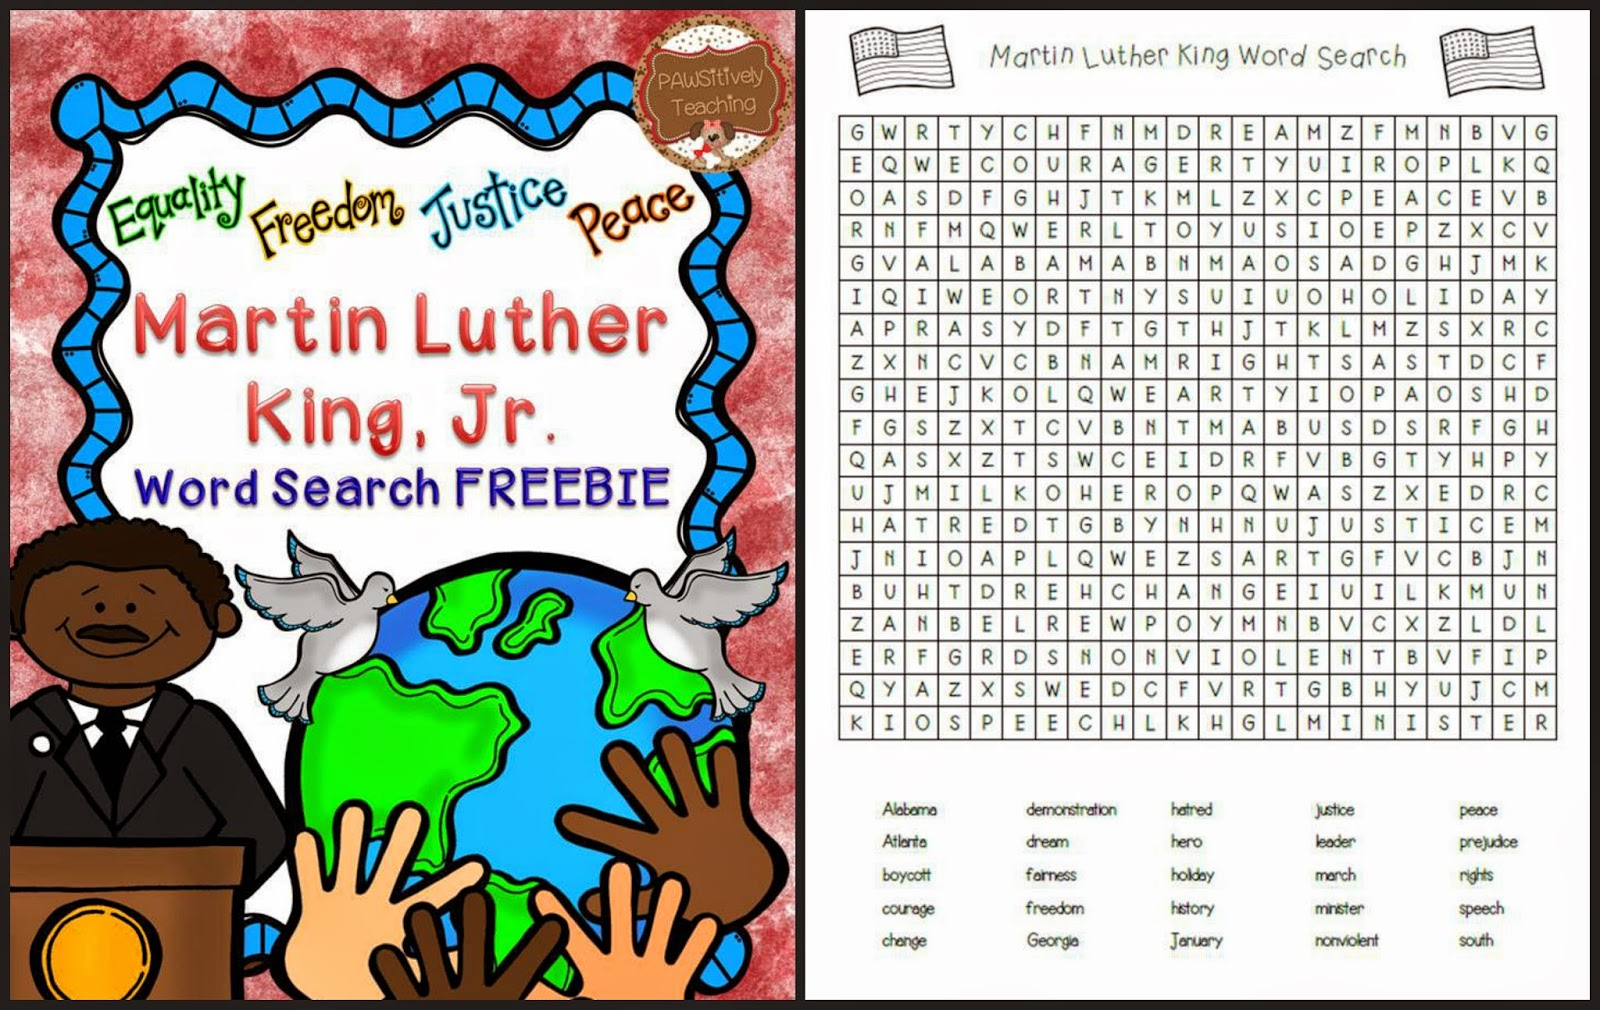 MLK Free Word Search Puzzle